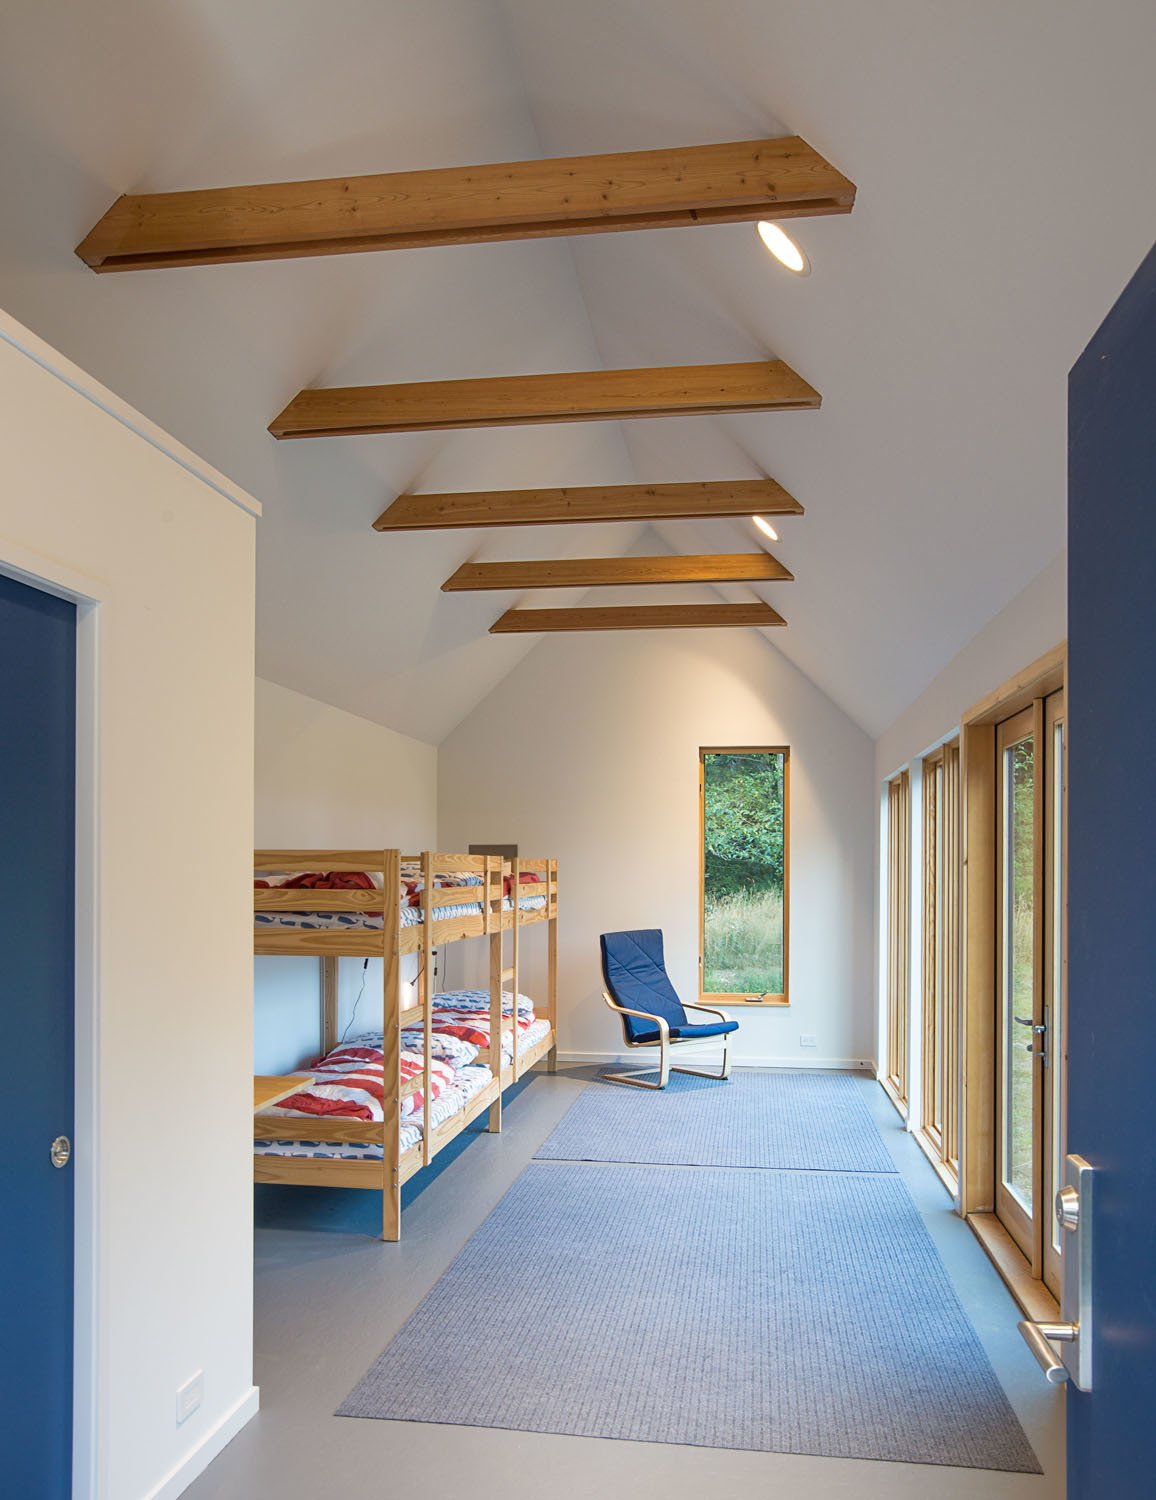 Kids Room, Bedroom Room Type, Toddler Age, Bunks, Pre-Teen Age, Neutral Gender, Chair, and Rug Floor An existing structure was moved, remodeled, and repurposed as a bunkroom.  Photos from The Coyle